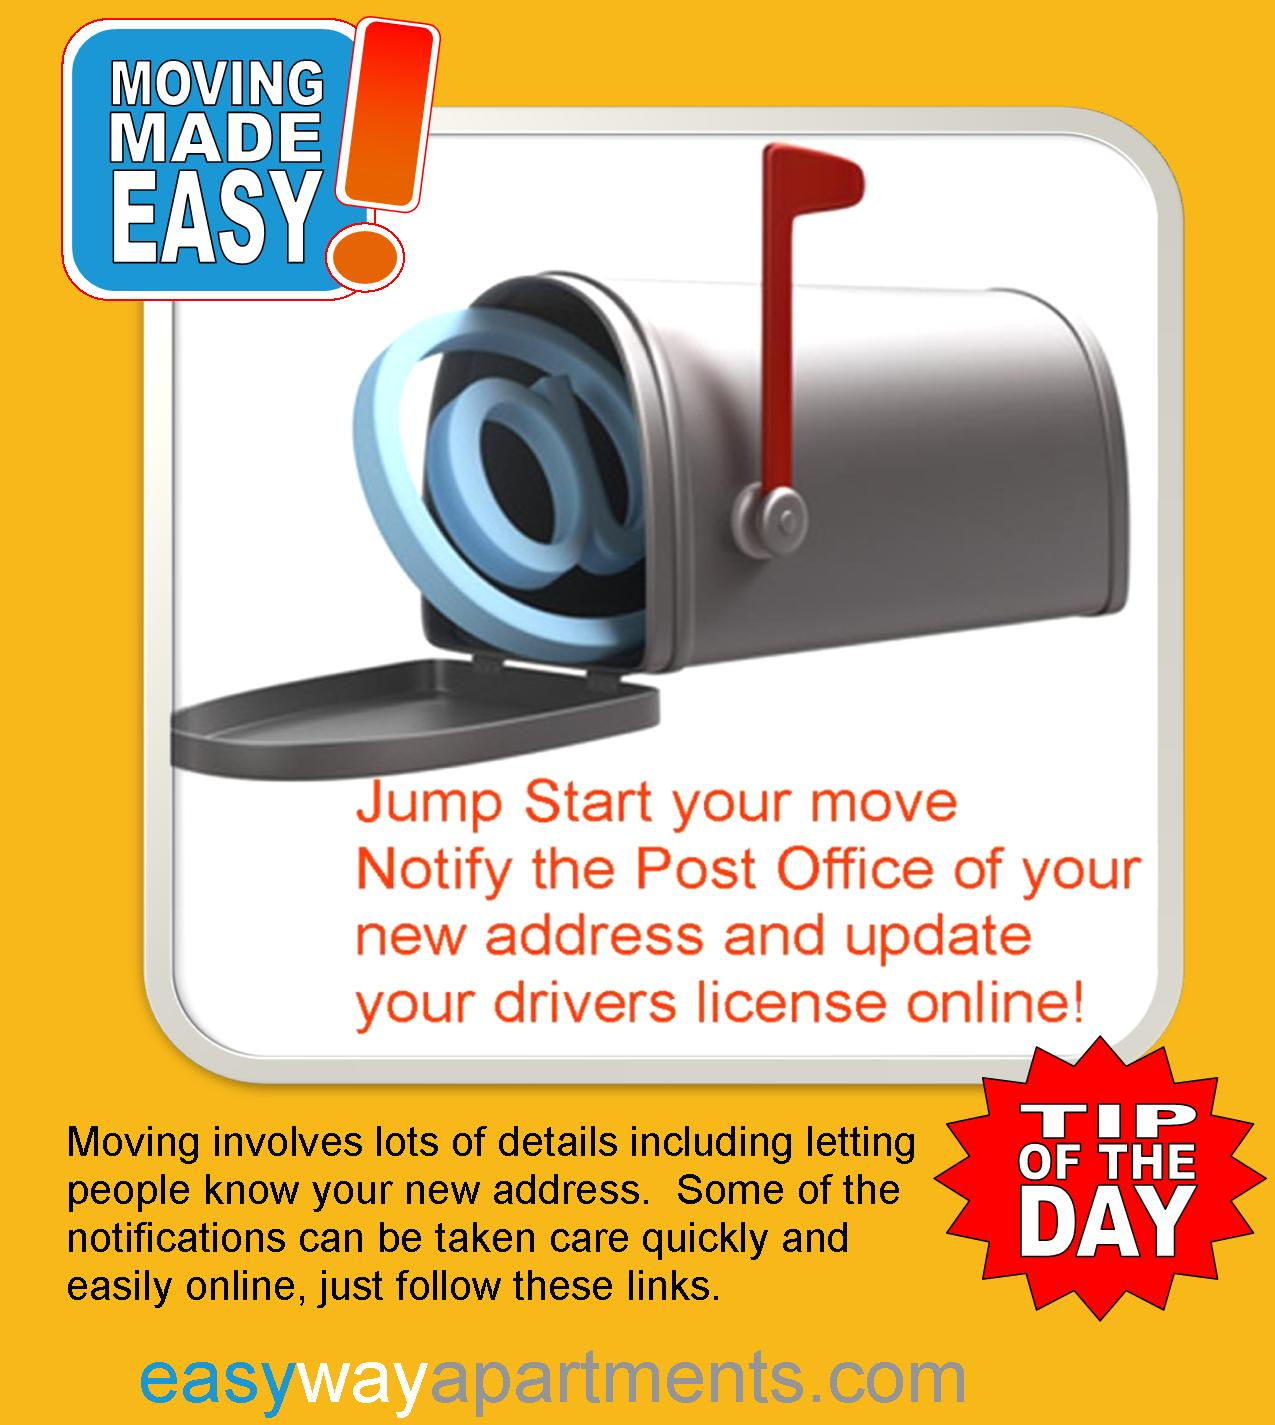 Handy links to the #Post Office and #Drivers License #change of address forms, plus more change of address tips for your upcoming move